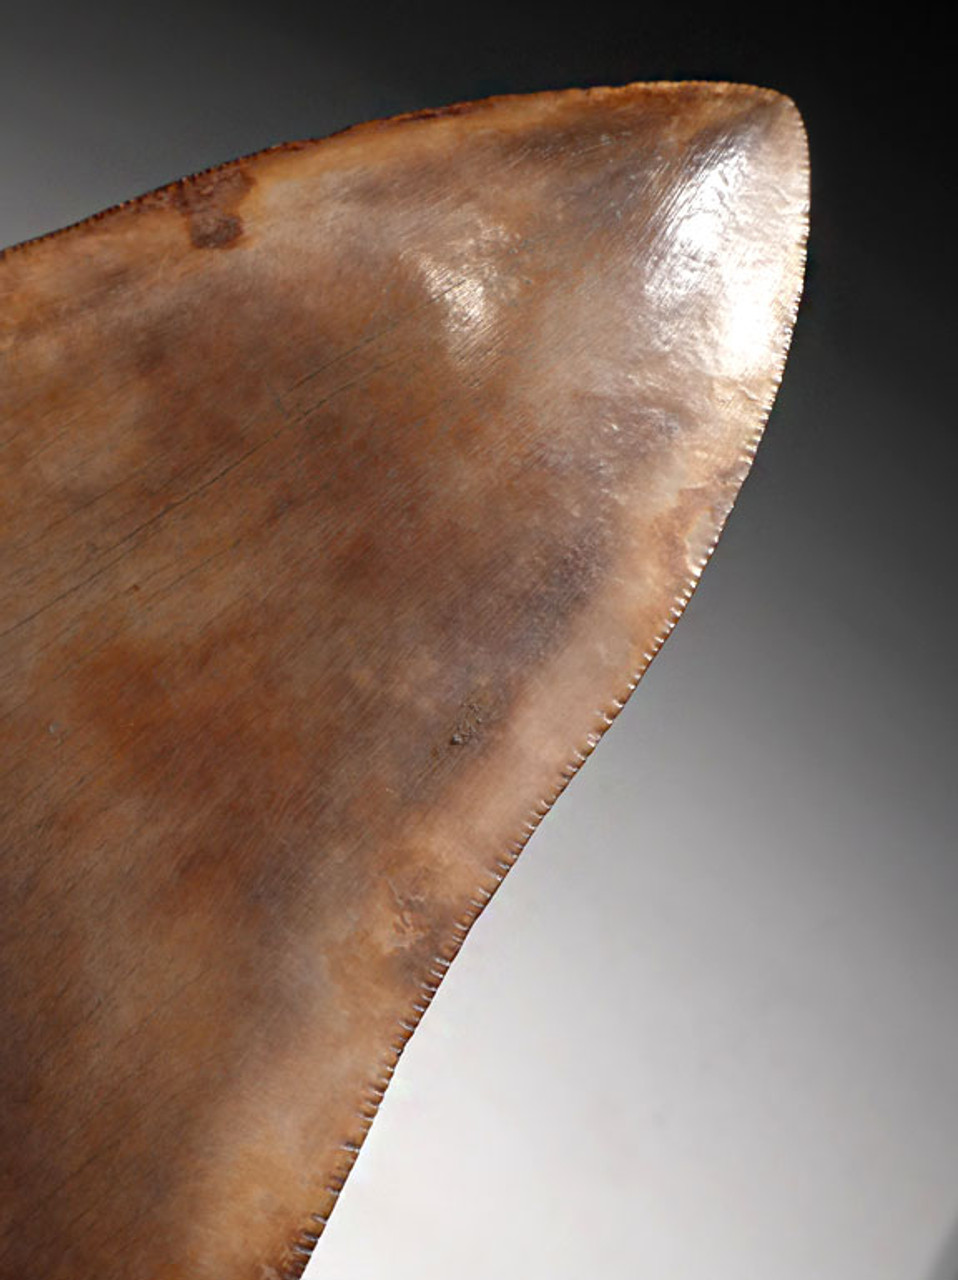 SH6-287 -  LARGE 5.3 INCH MEGALODON SHARK TOOTH WITH STEEL GRAY AND COPPER REFLECTIVE ENAMEL